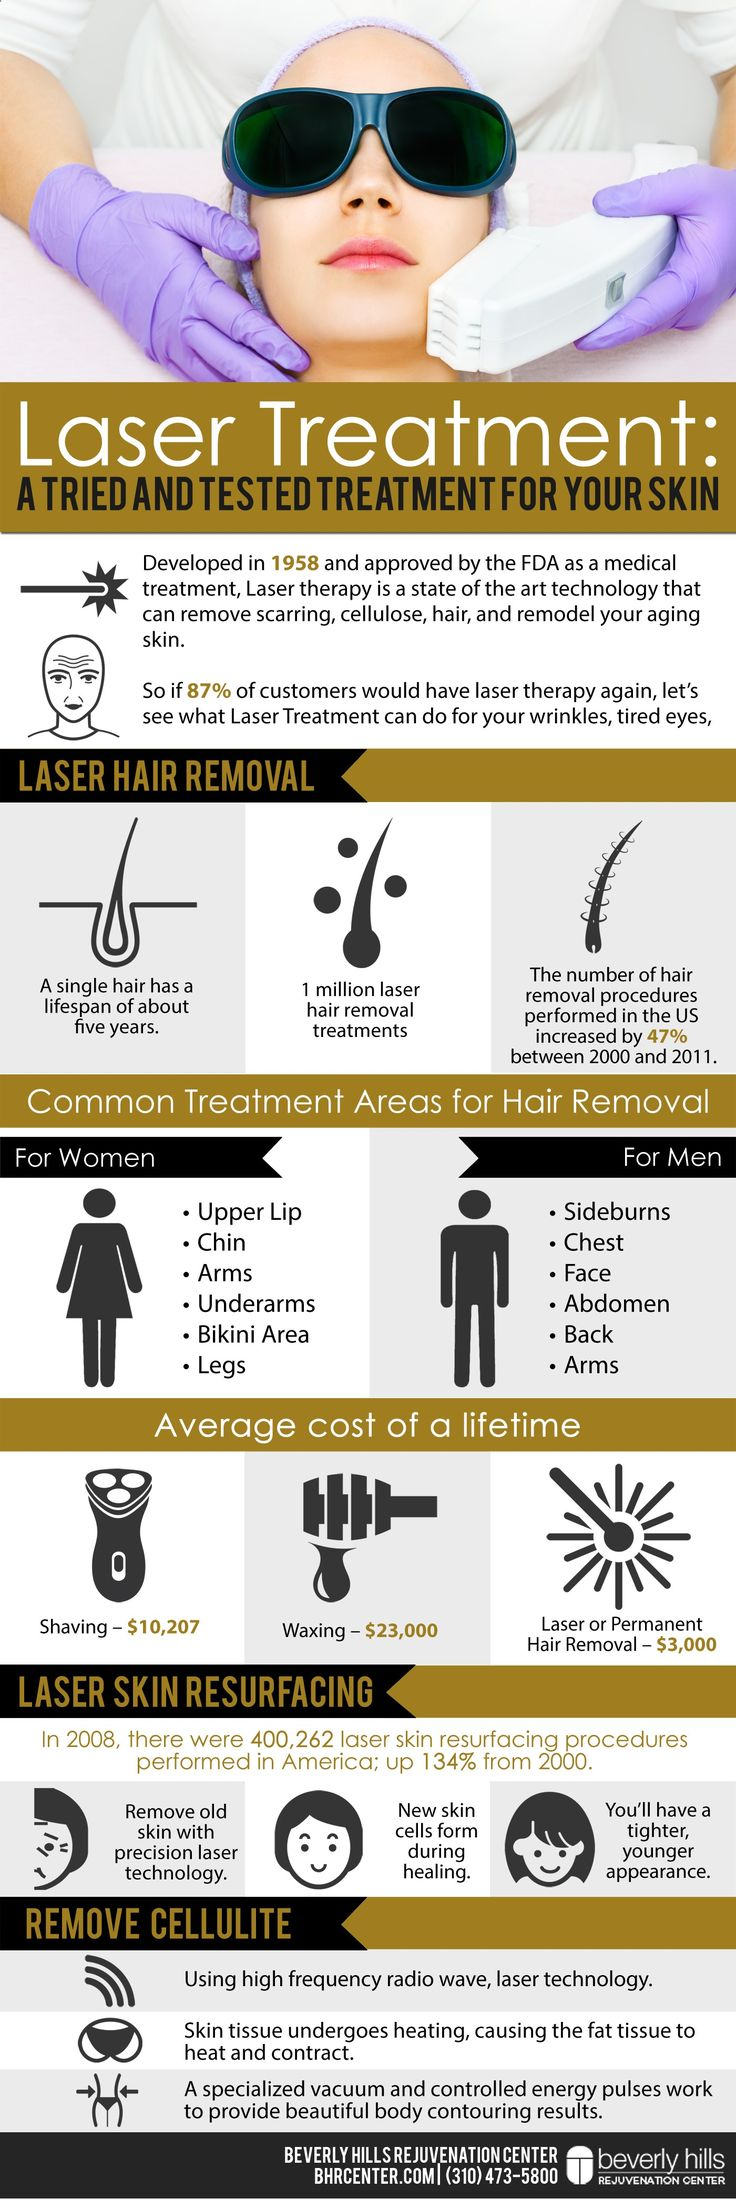 Laser Hair Removal Cost State College Pa | Hairstly.org